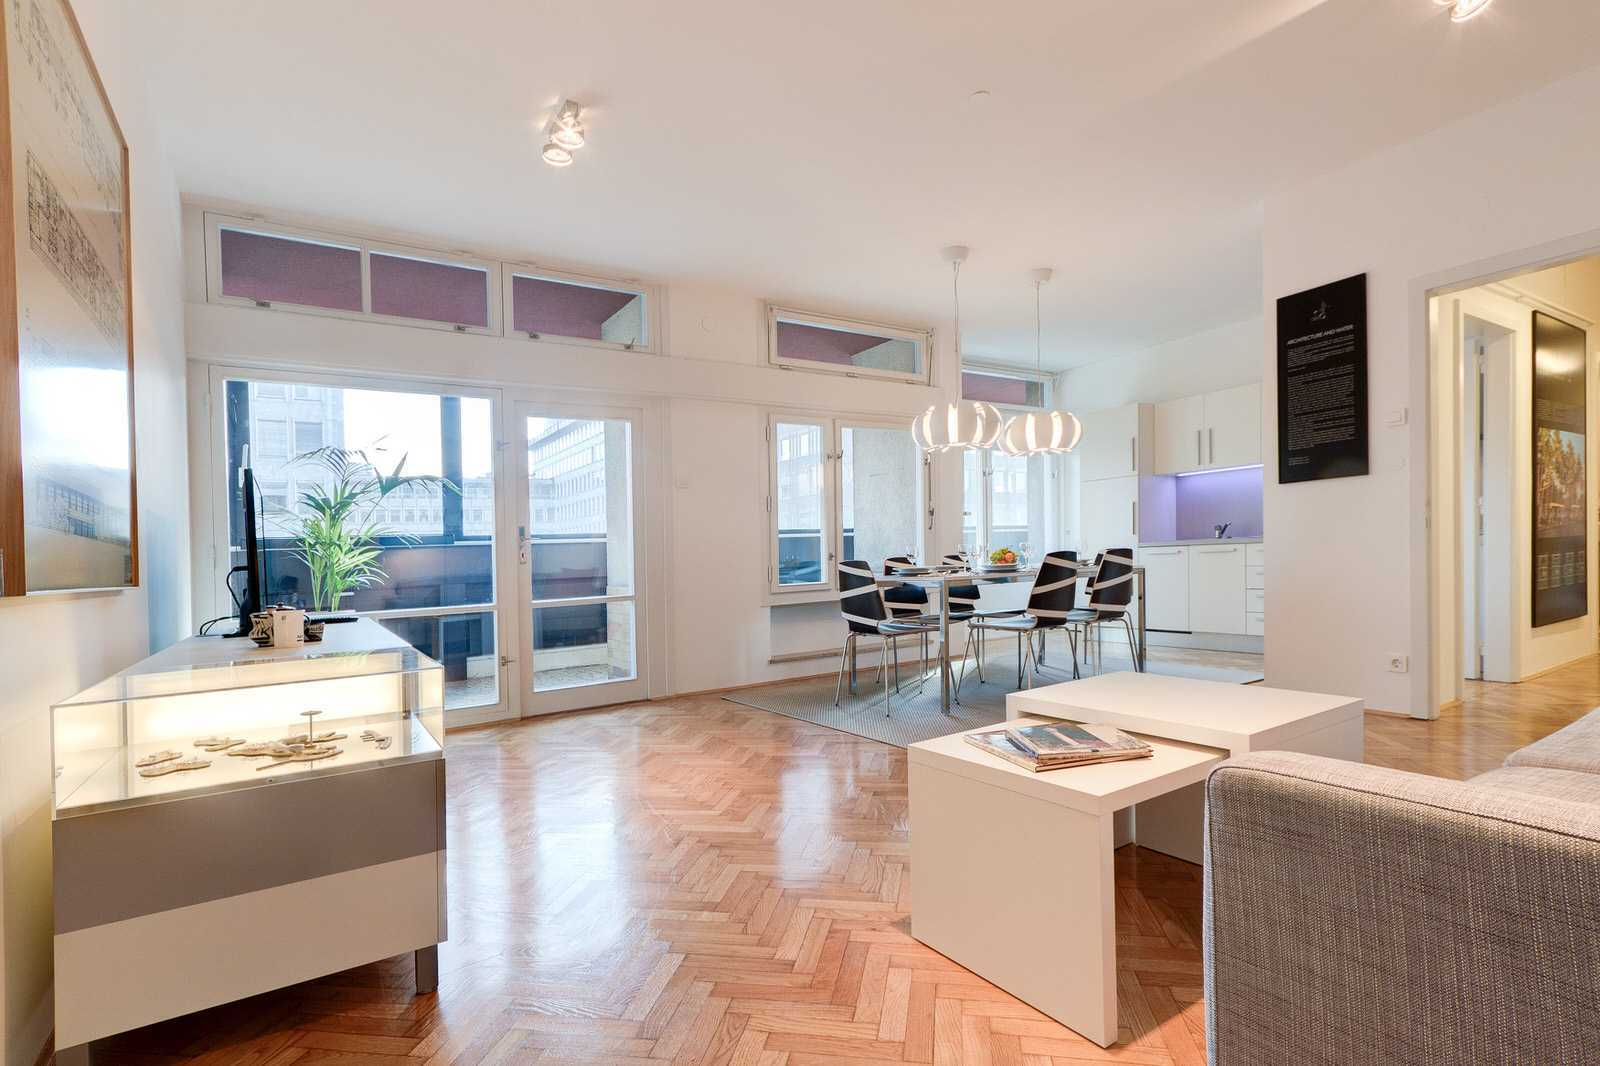 Ljubljana rental apartment's spacious living room with architectual projects displayed on the wall.